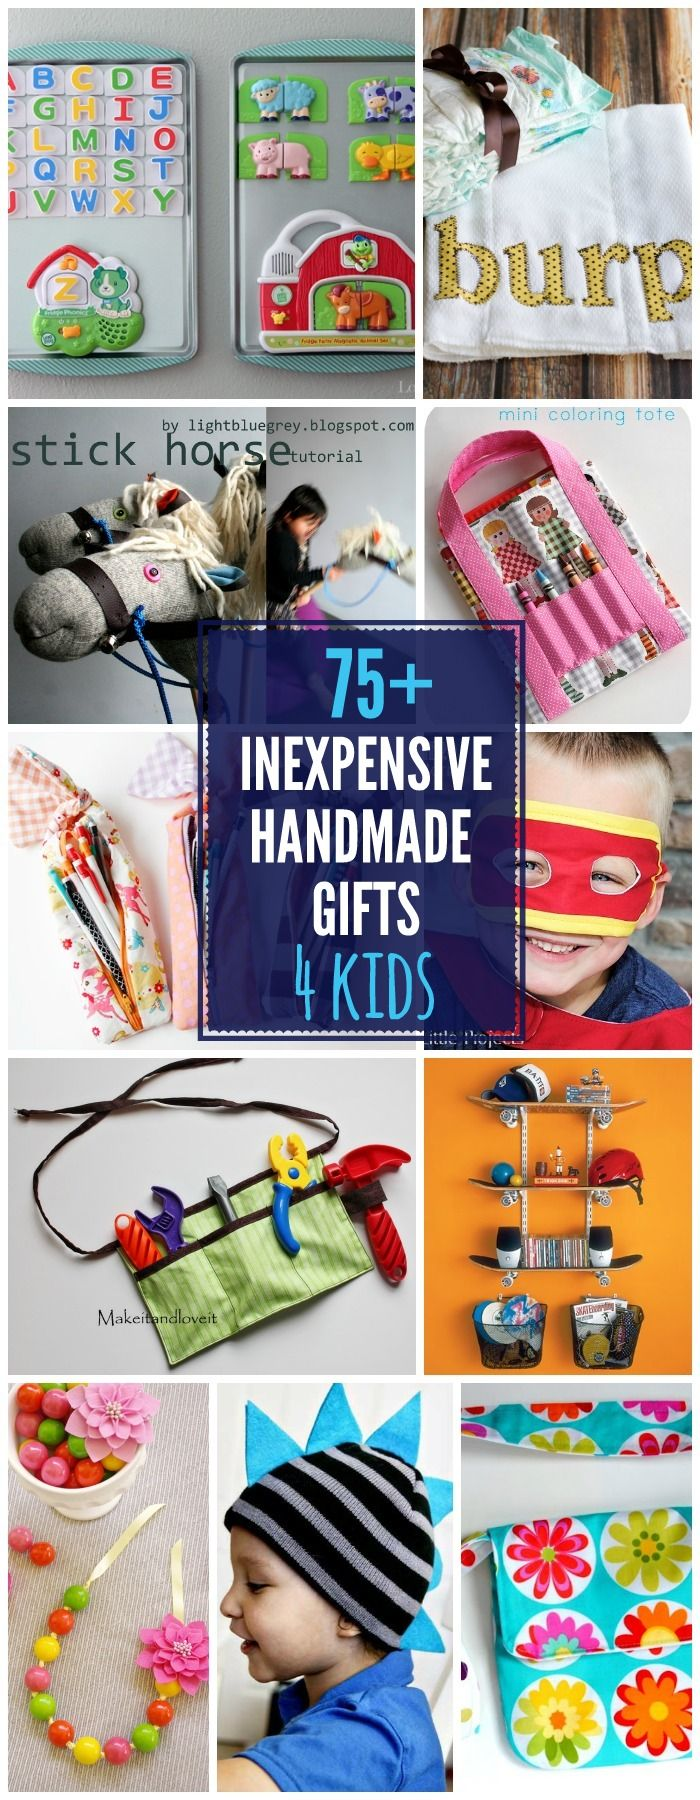 50+ Inexpensive DIY Gift Ideas